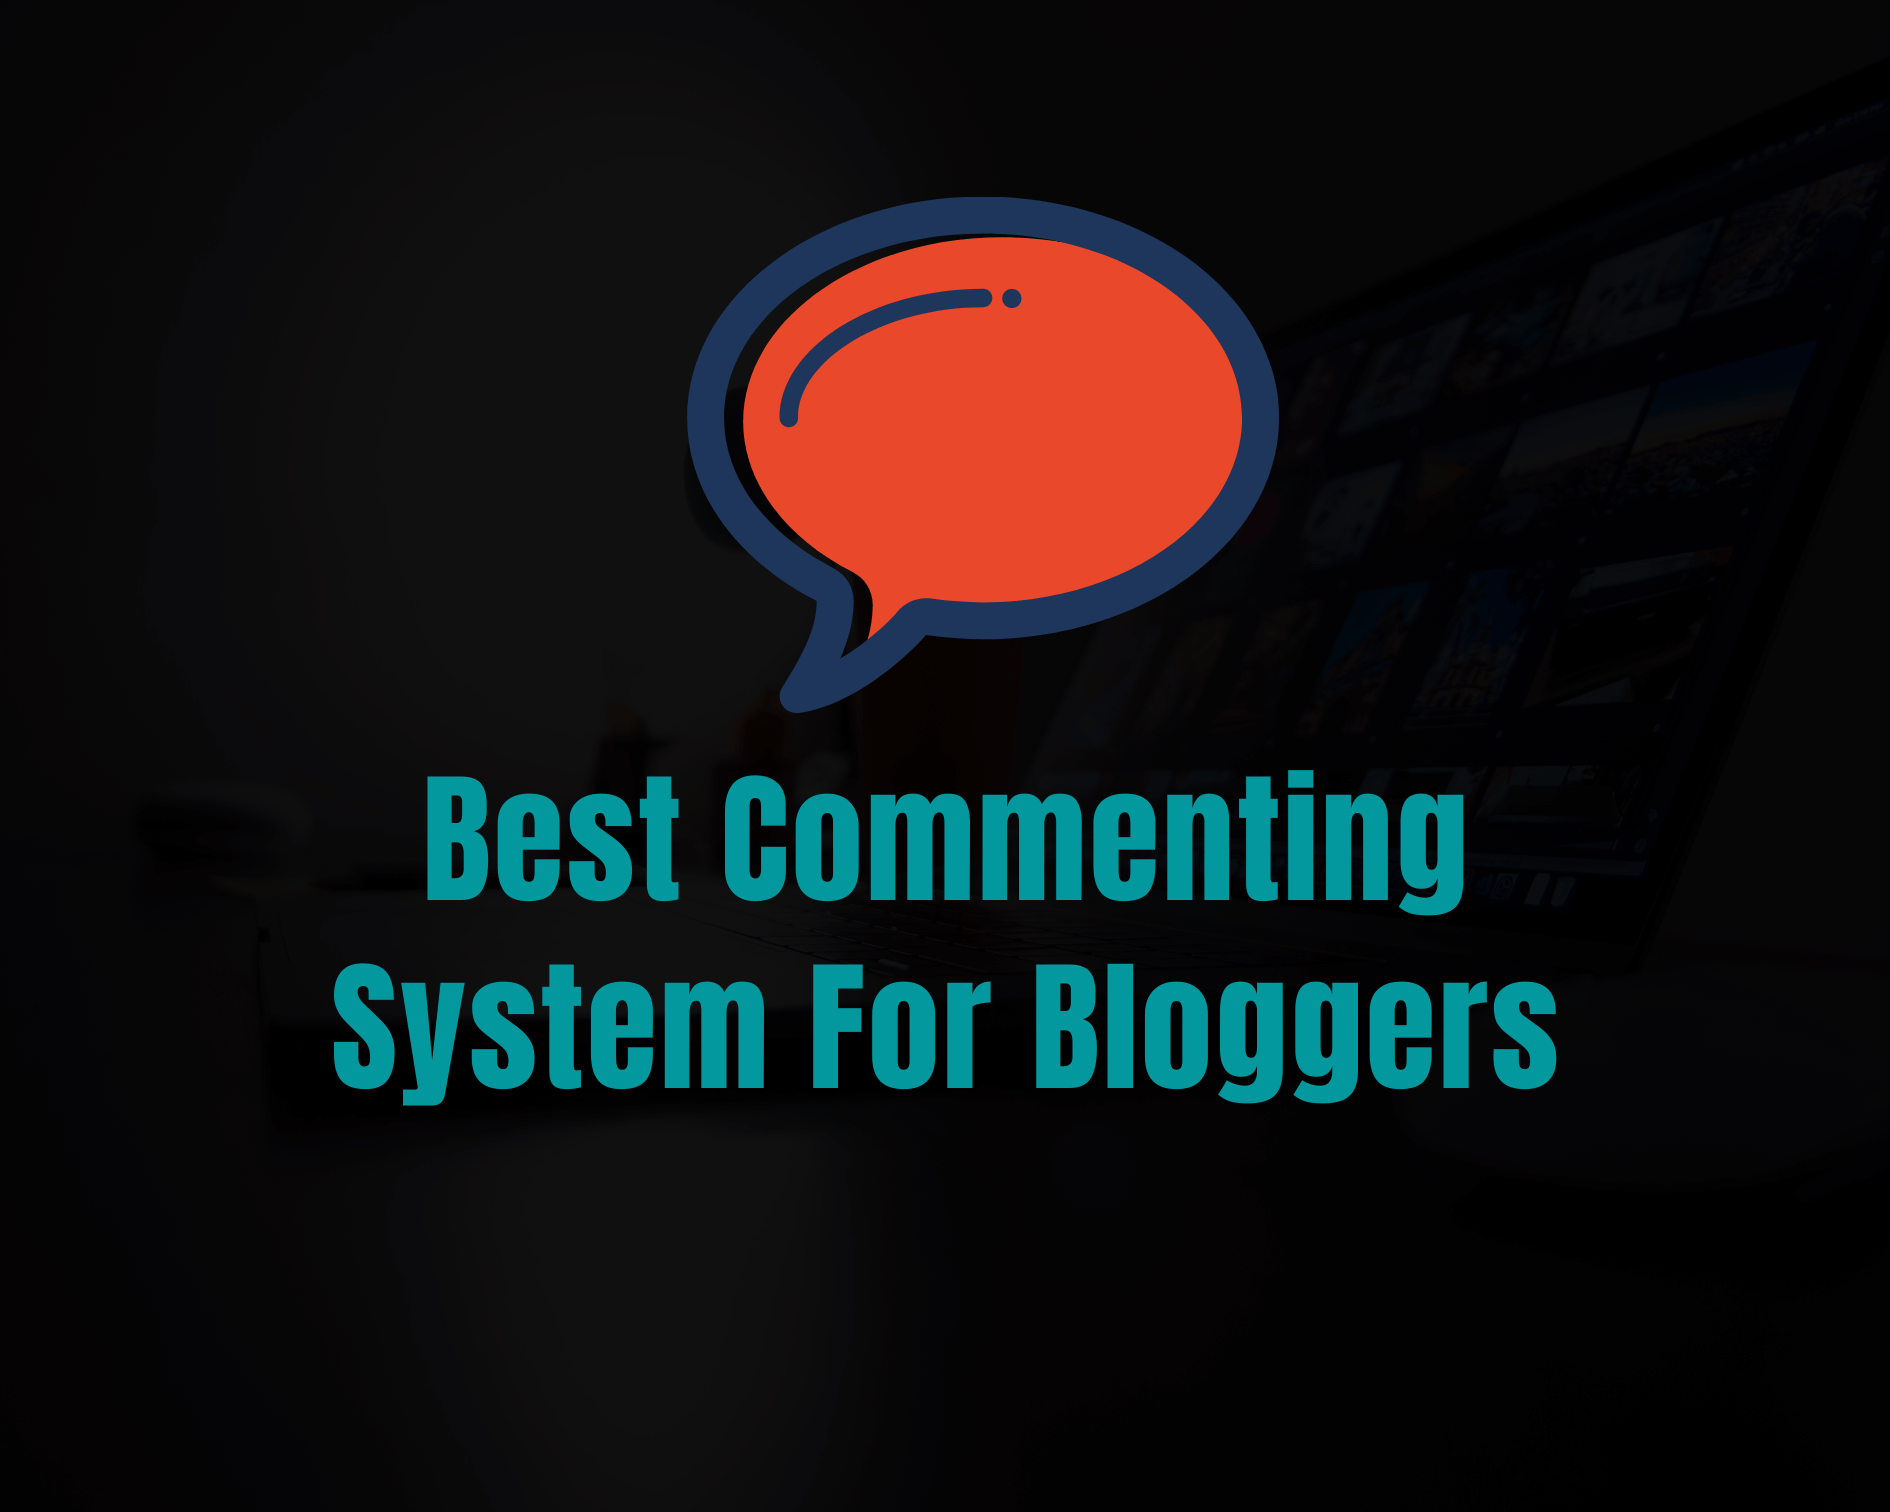 Top 5 Commenting Systems for Blogs in 2020